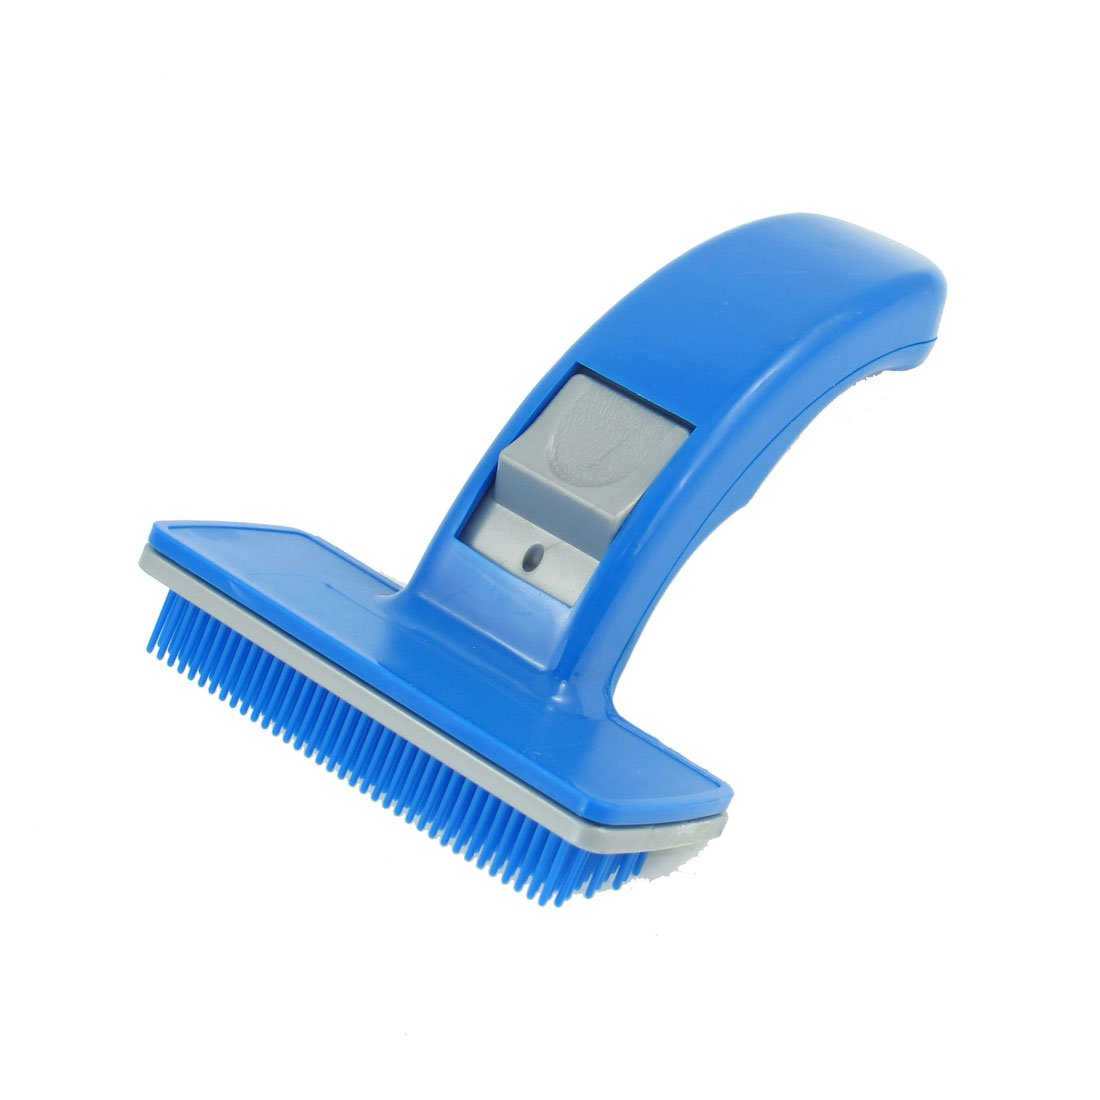 uxcell Plastic Pet Hair Shedding Grooming Brush Comb, Blue